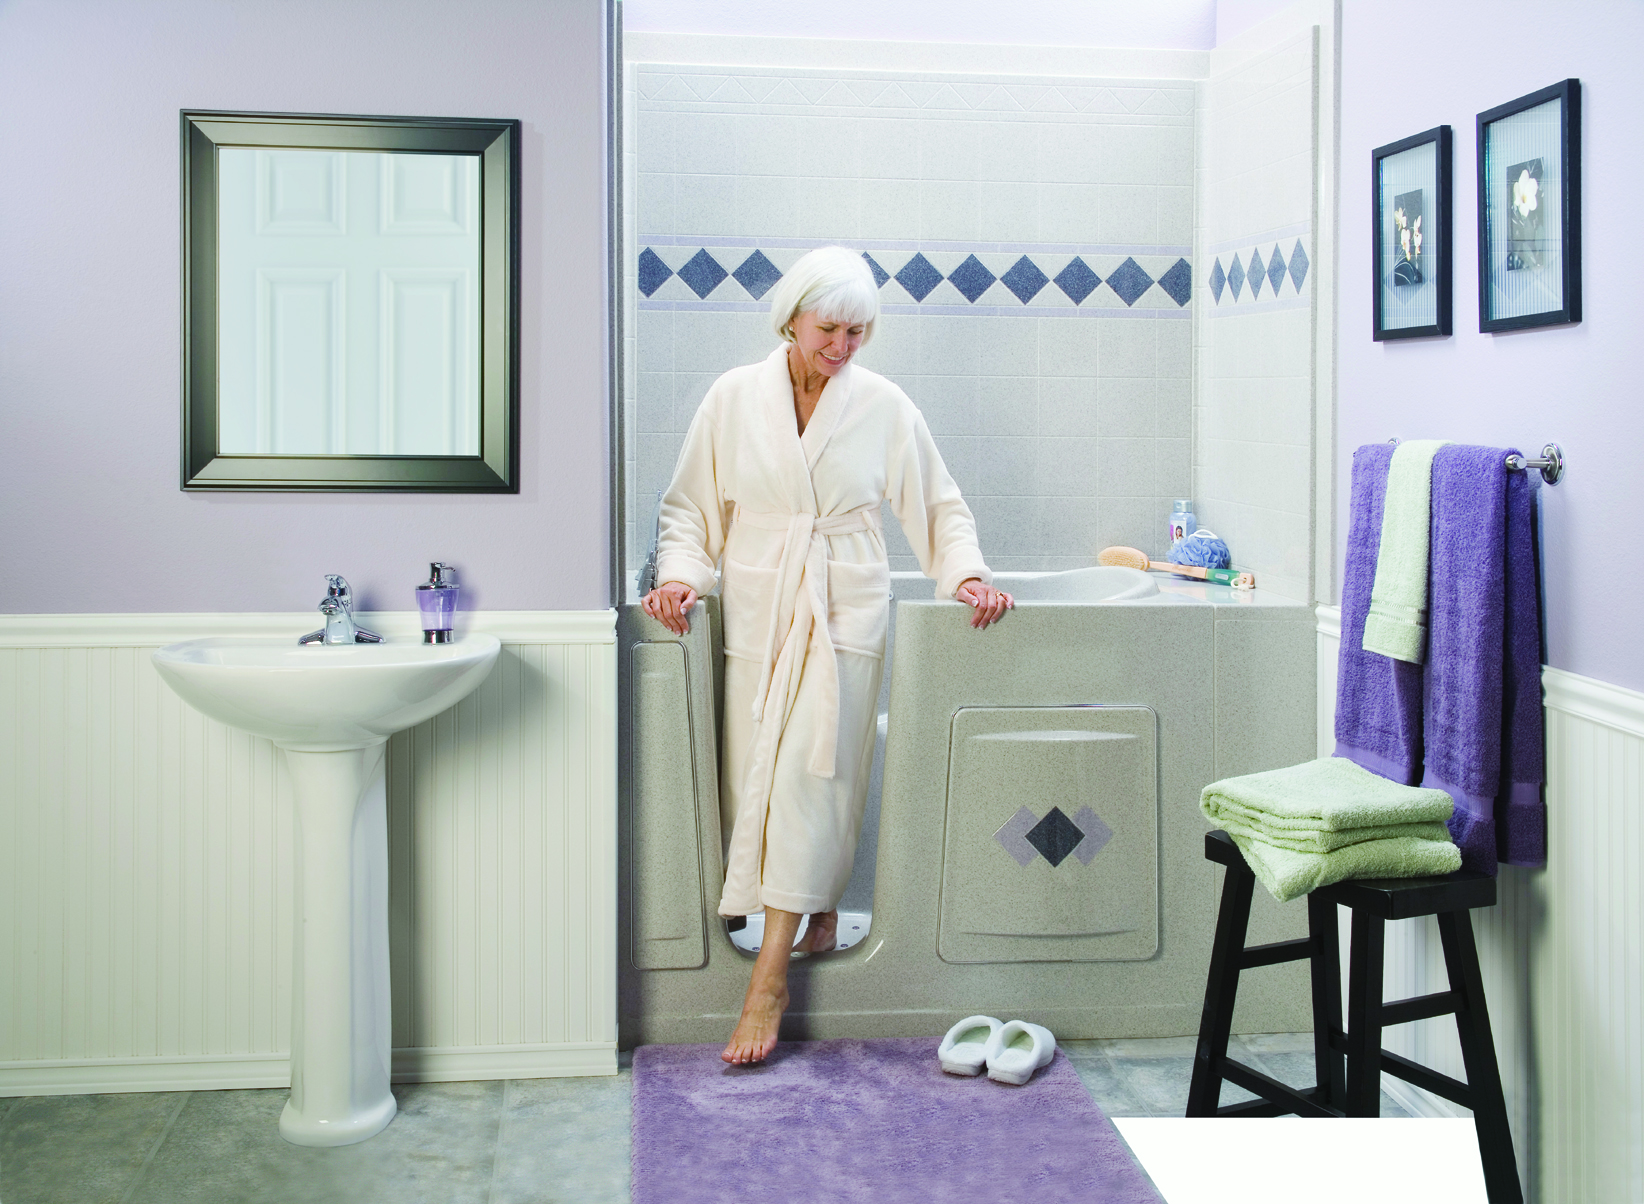 Products aquassure Small bathroom remodel for elderly